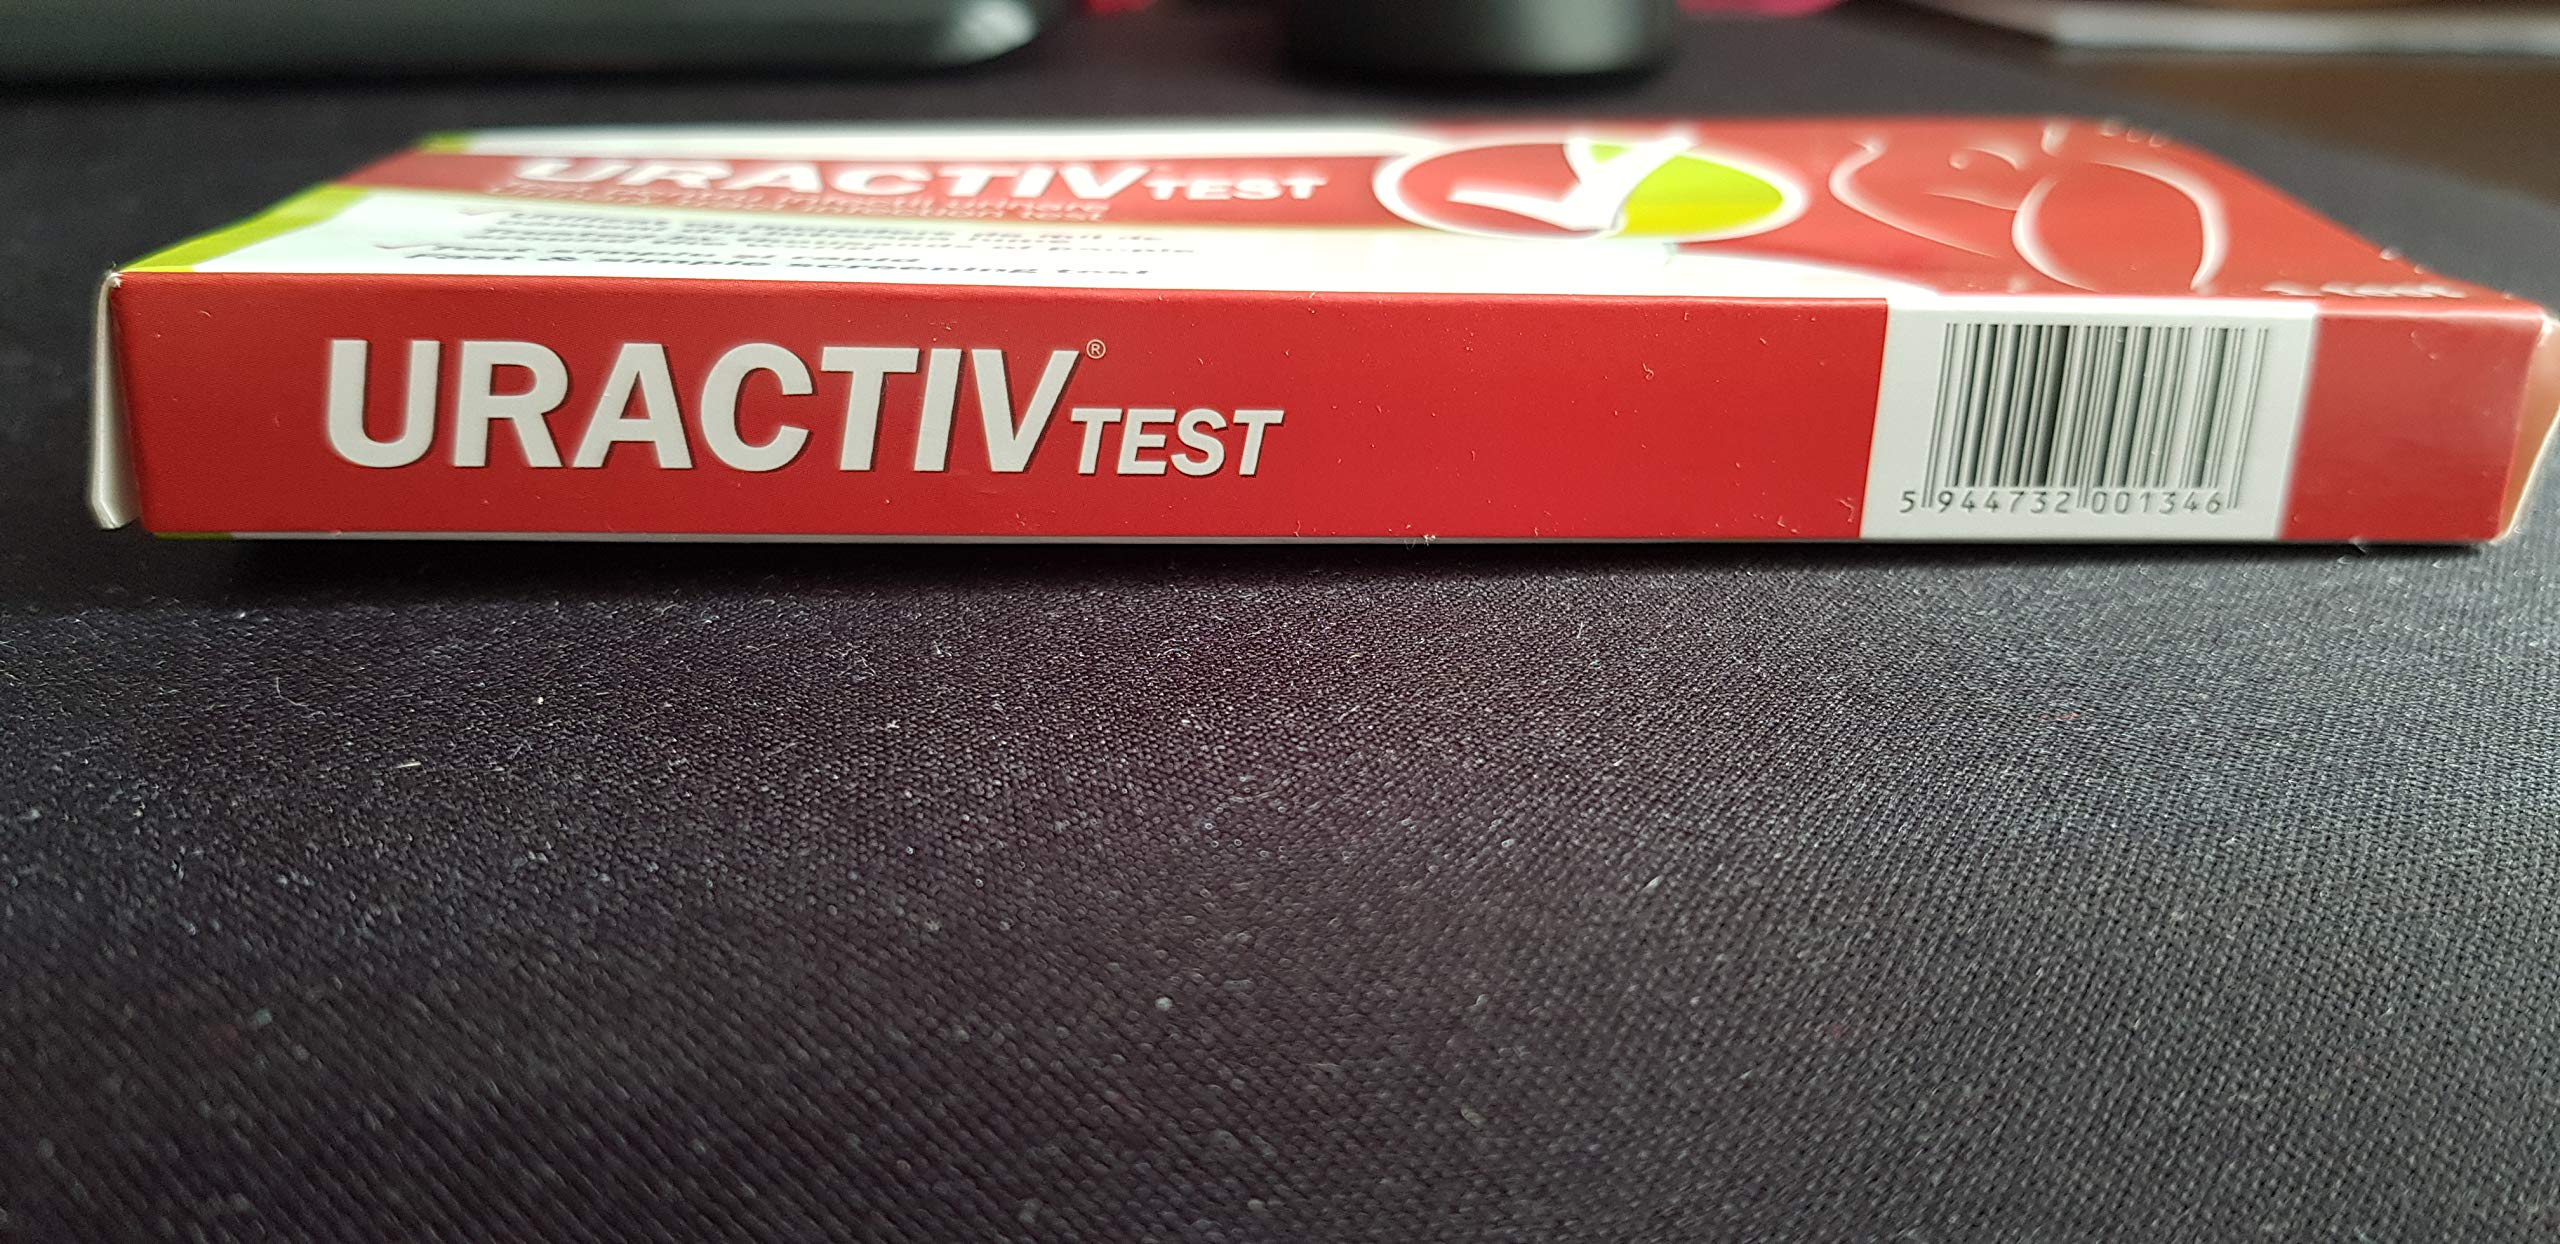 Uractiv Test for Urinary infections, 1 Piece